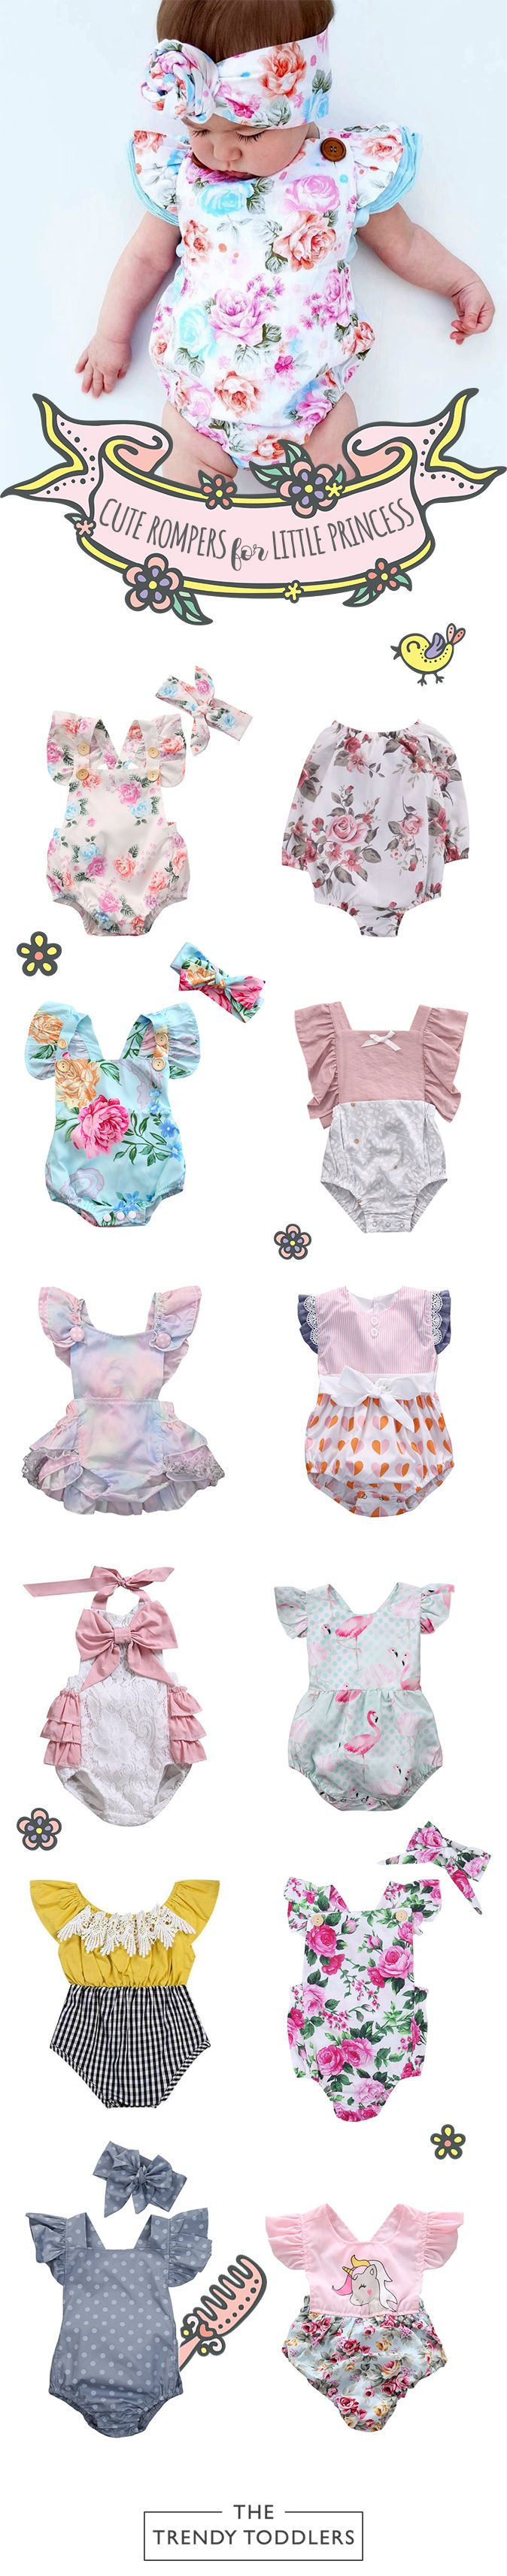 UP TO 70% OFF + FREE SHIPPING! Shop our entire collection of cute baby & toddler rompers at thetrendytoddlers.com. #toddlerRompers